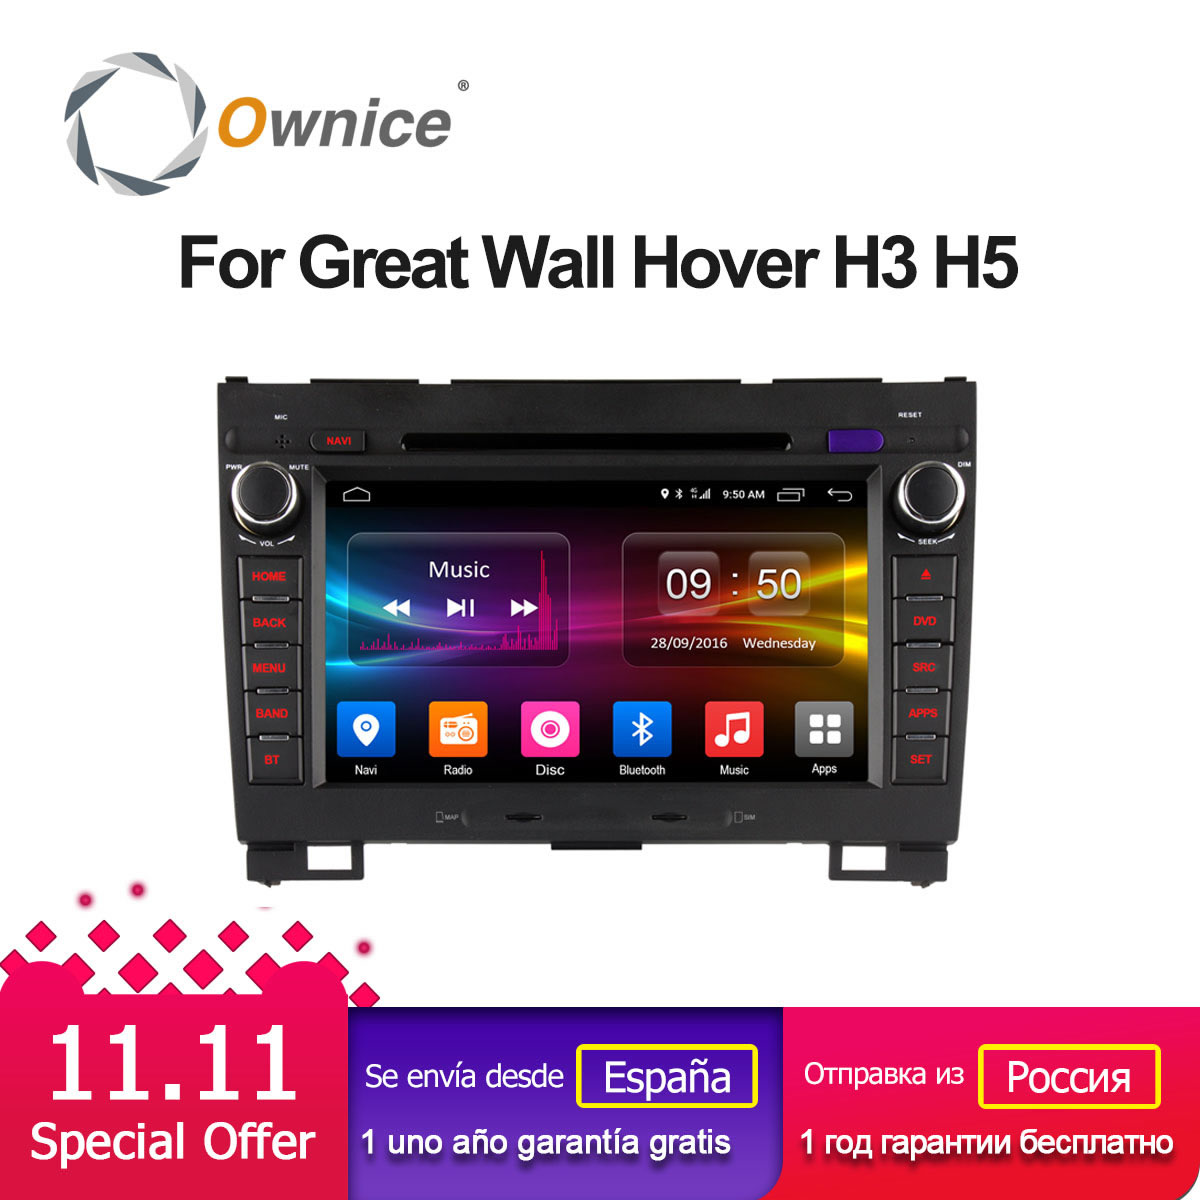 Ownice C500 Android 6.0 Octa 8 Core LECTEUR DVD de VOITURE GPS Navi Pour Great Wall Hover H3 H5 wifi 4g radio 2 gb RAM 32 gb ROM 4g LTE